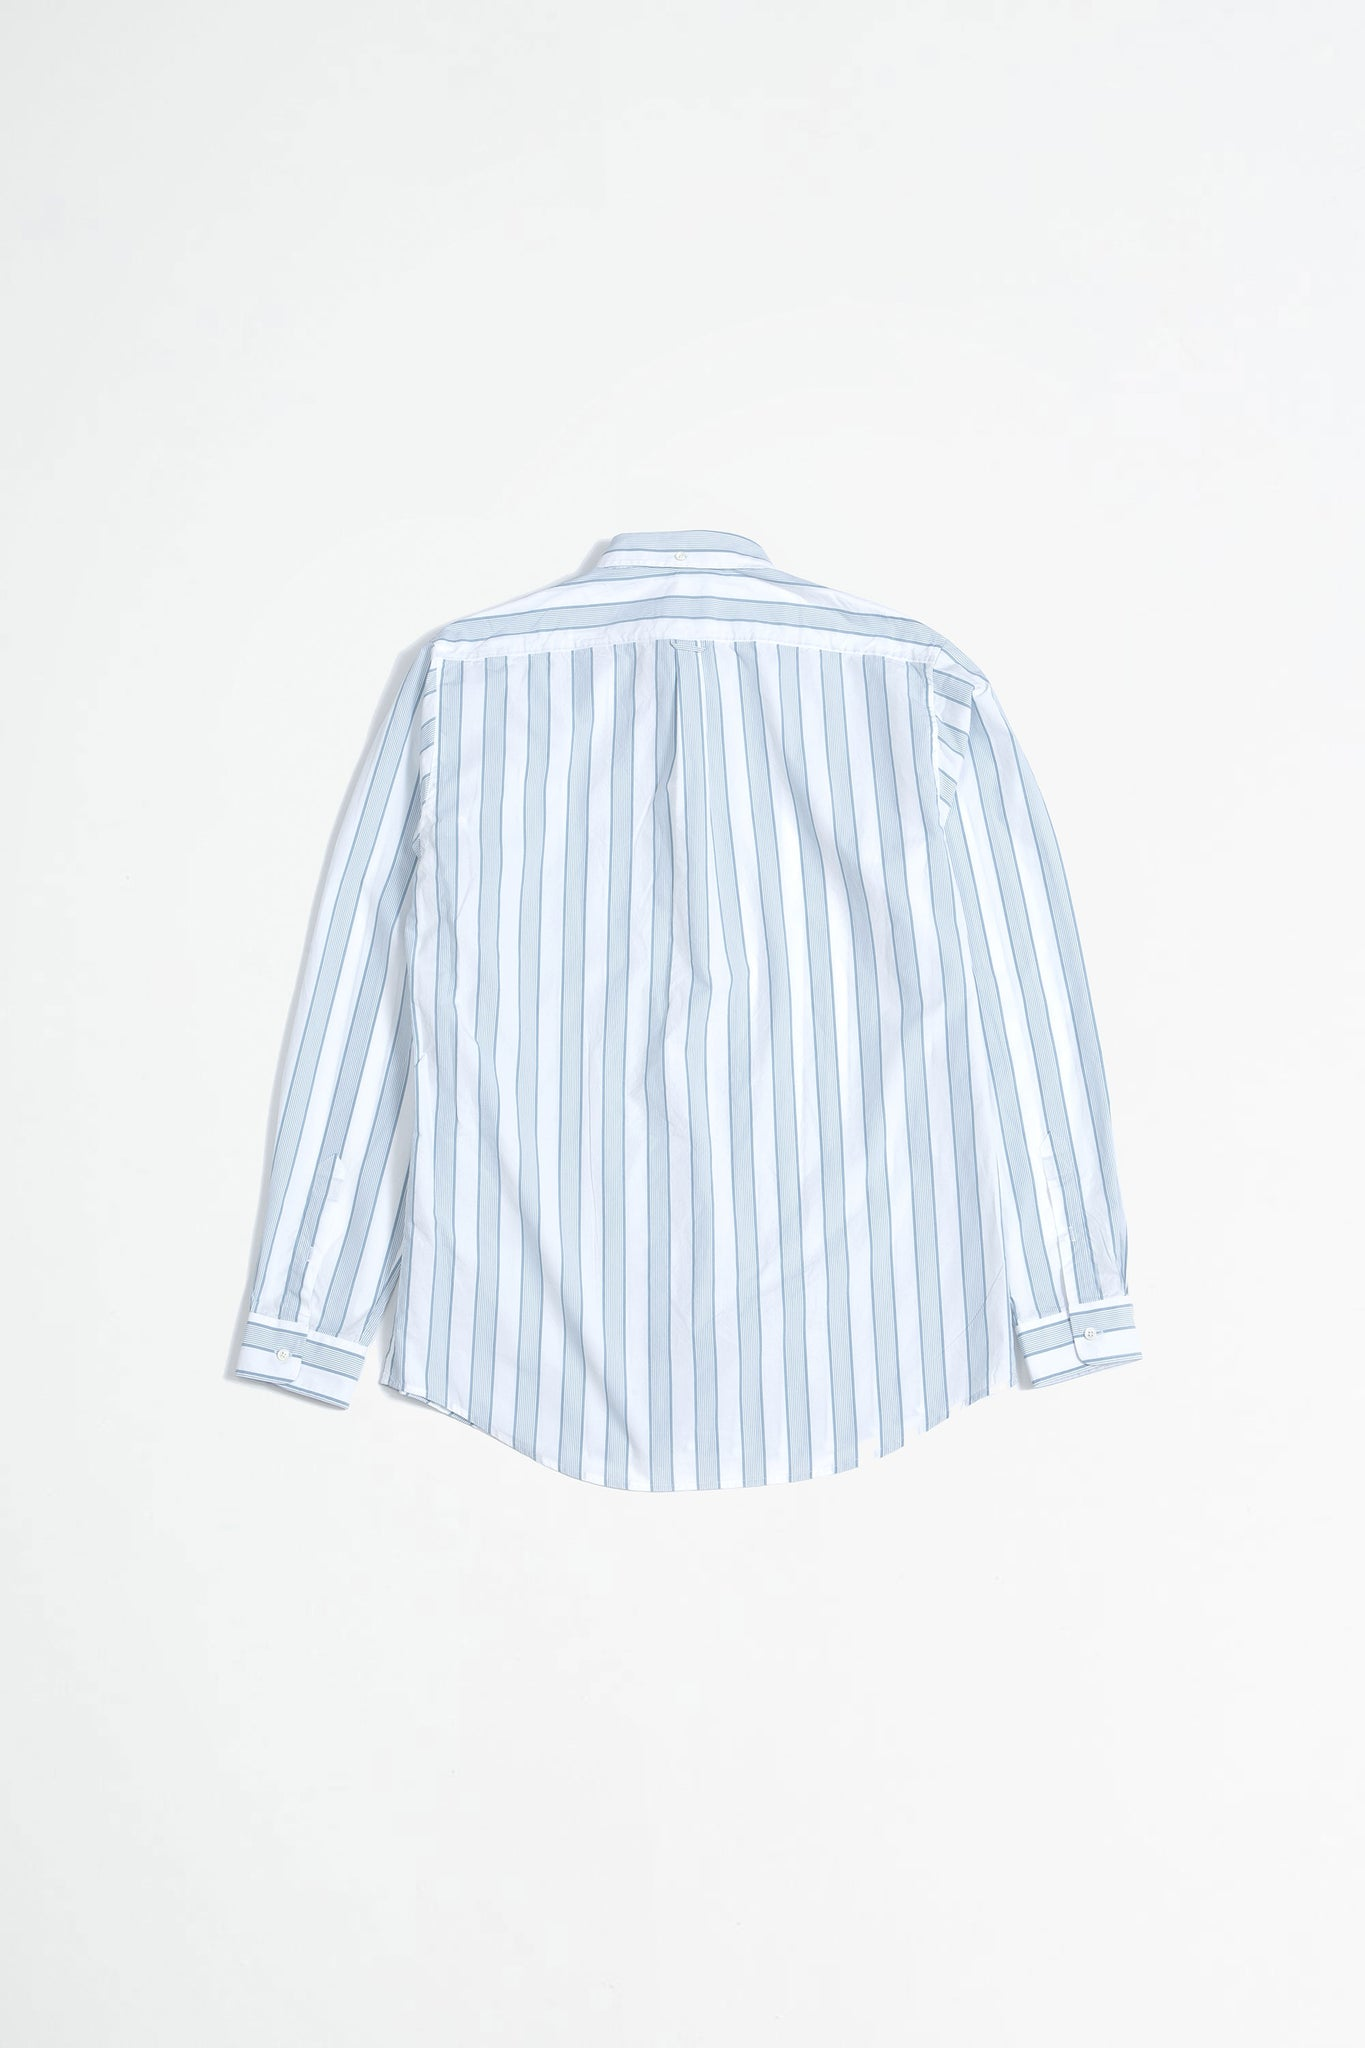 Shirt BD stripe in stripe green/white